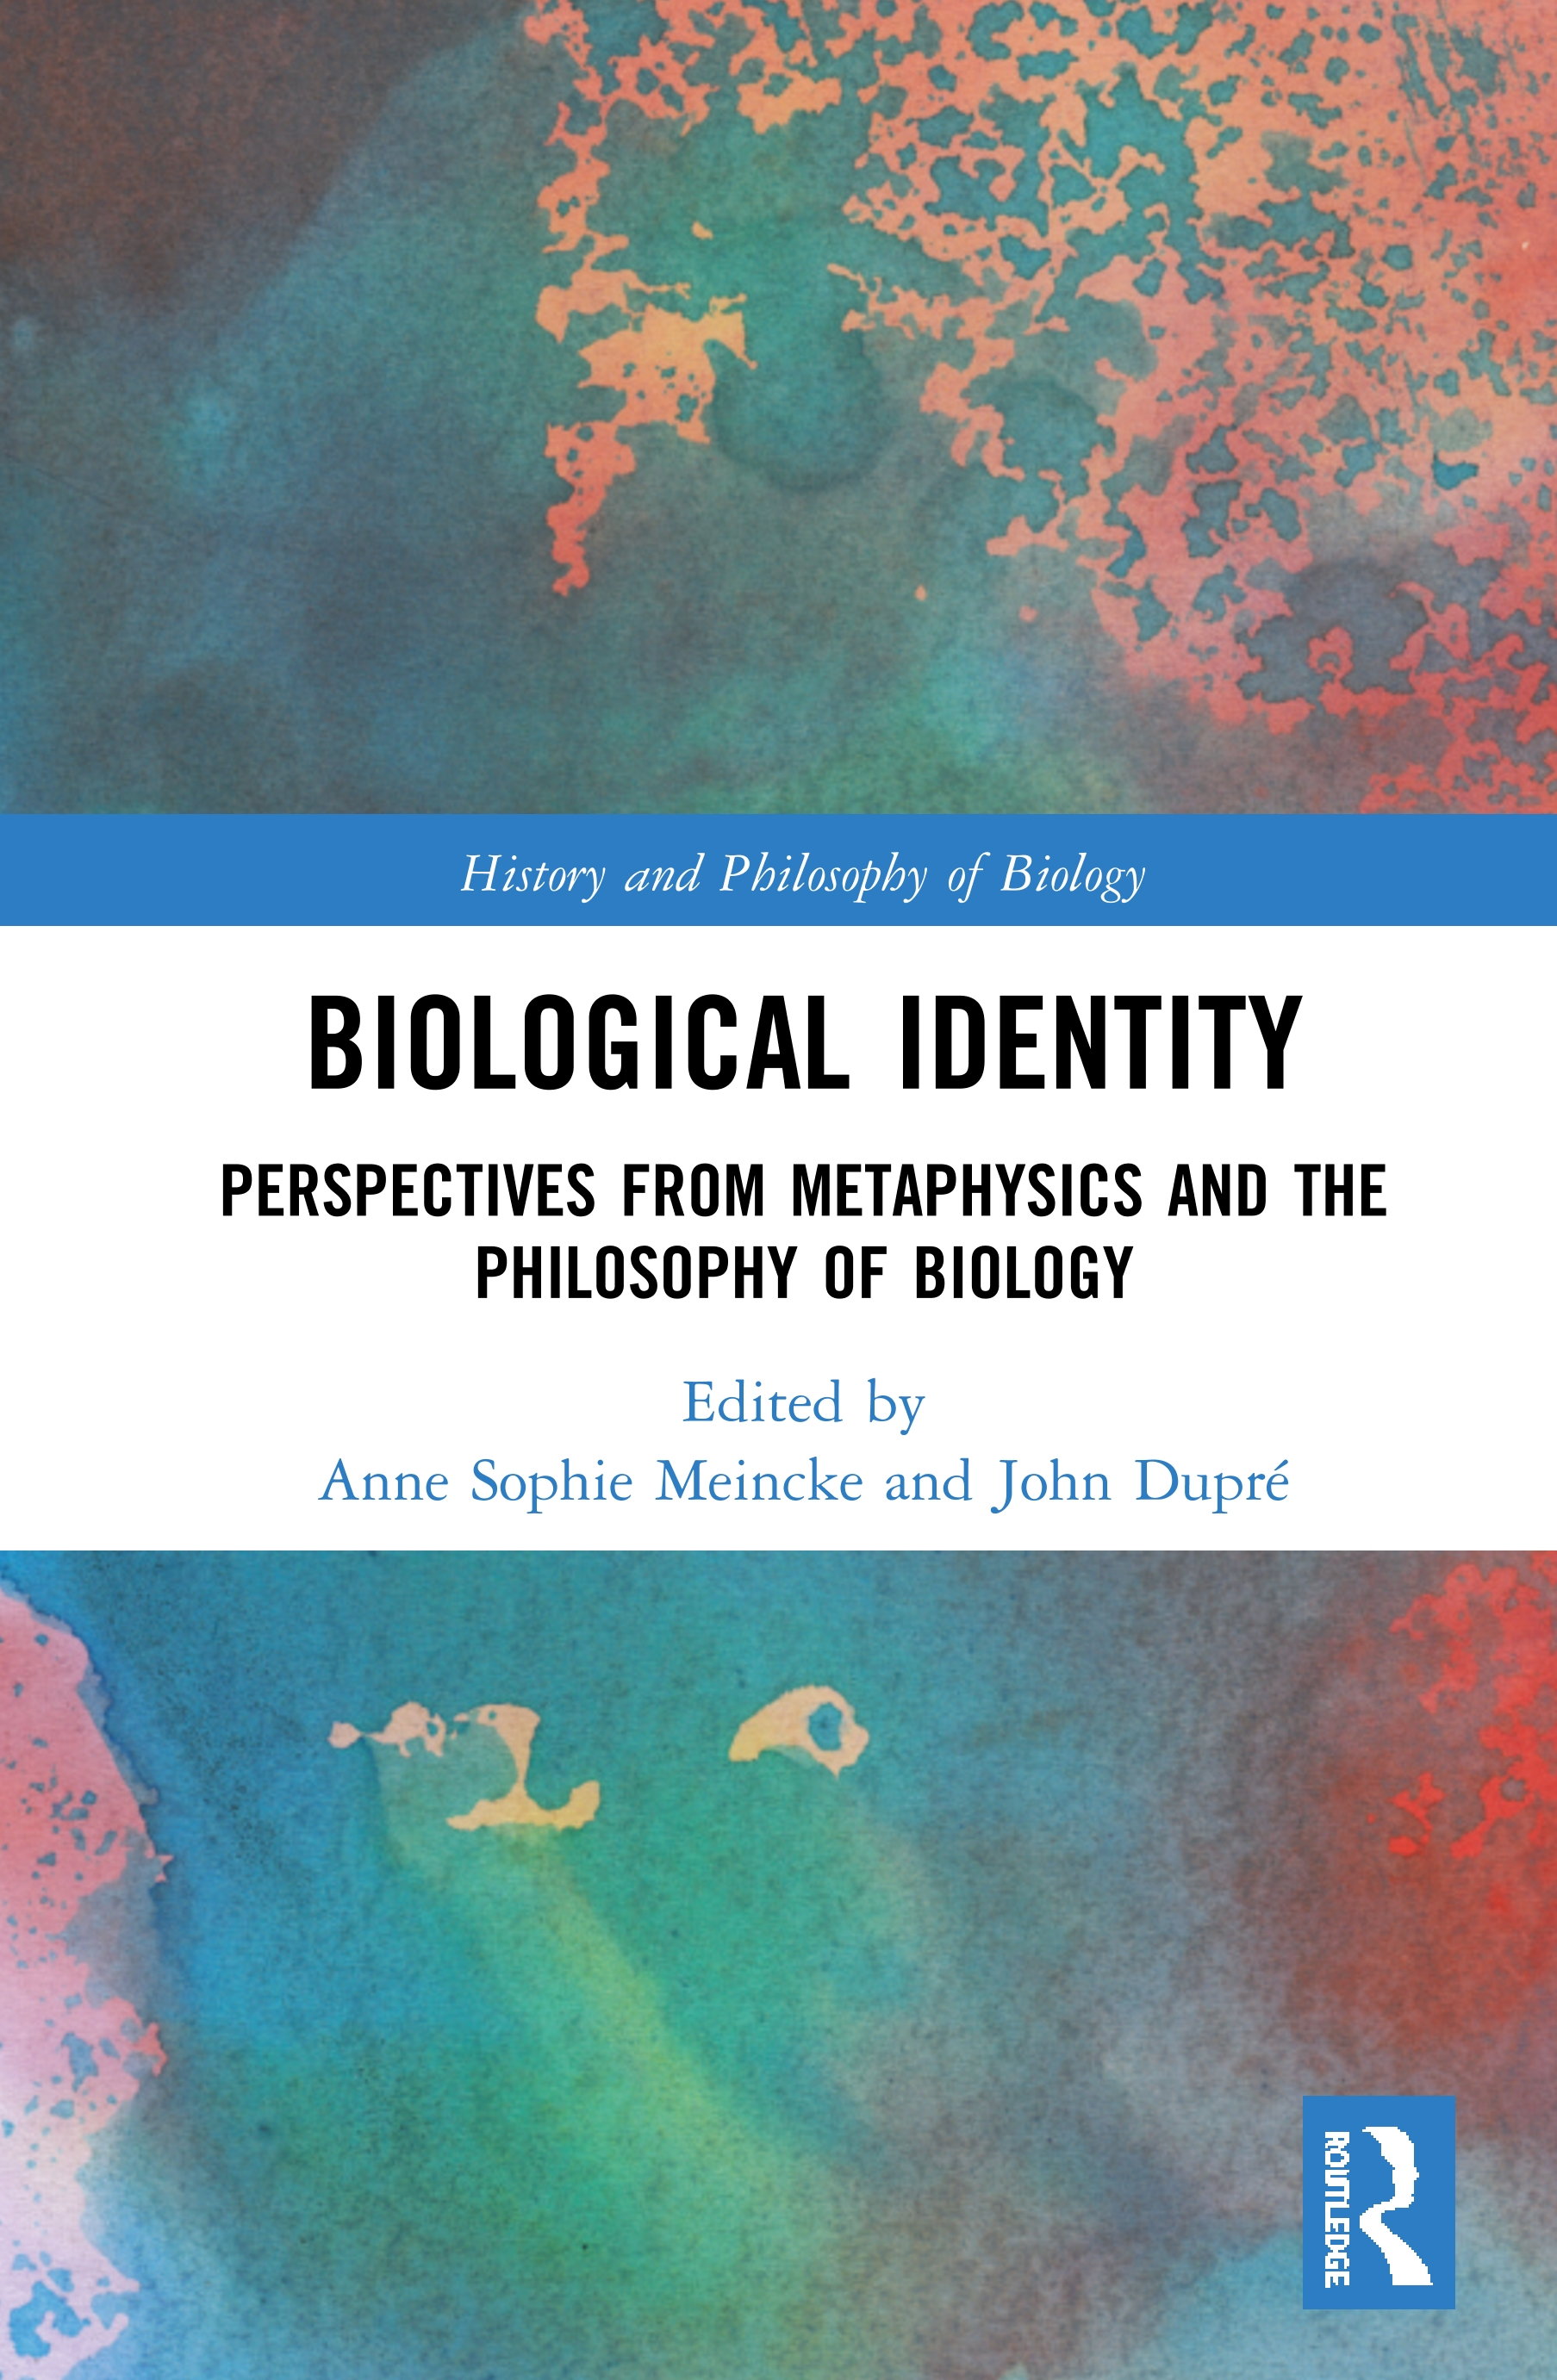 Biological Identity: Perspectives from Metaphysics and the Philosophy of Biology book cover